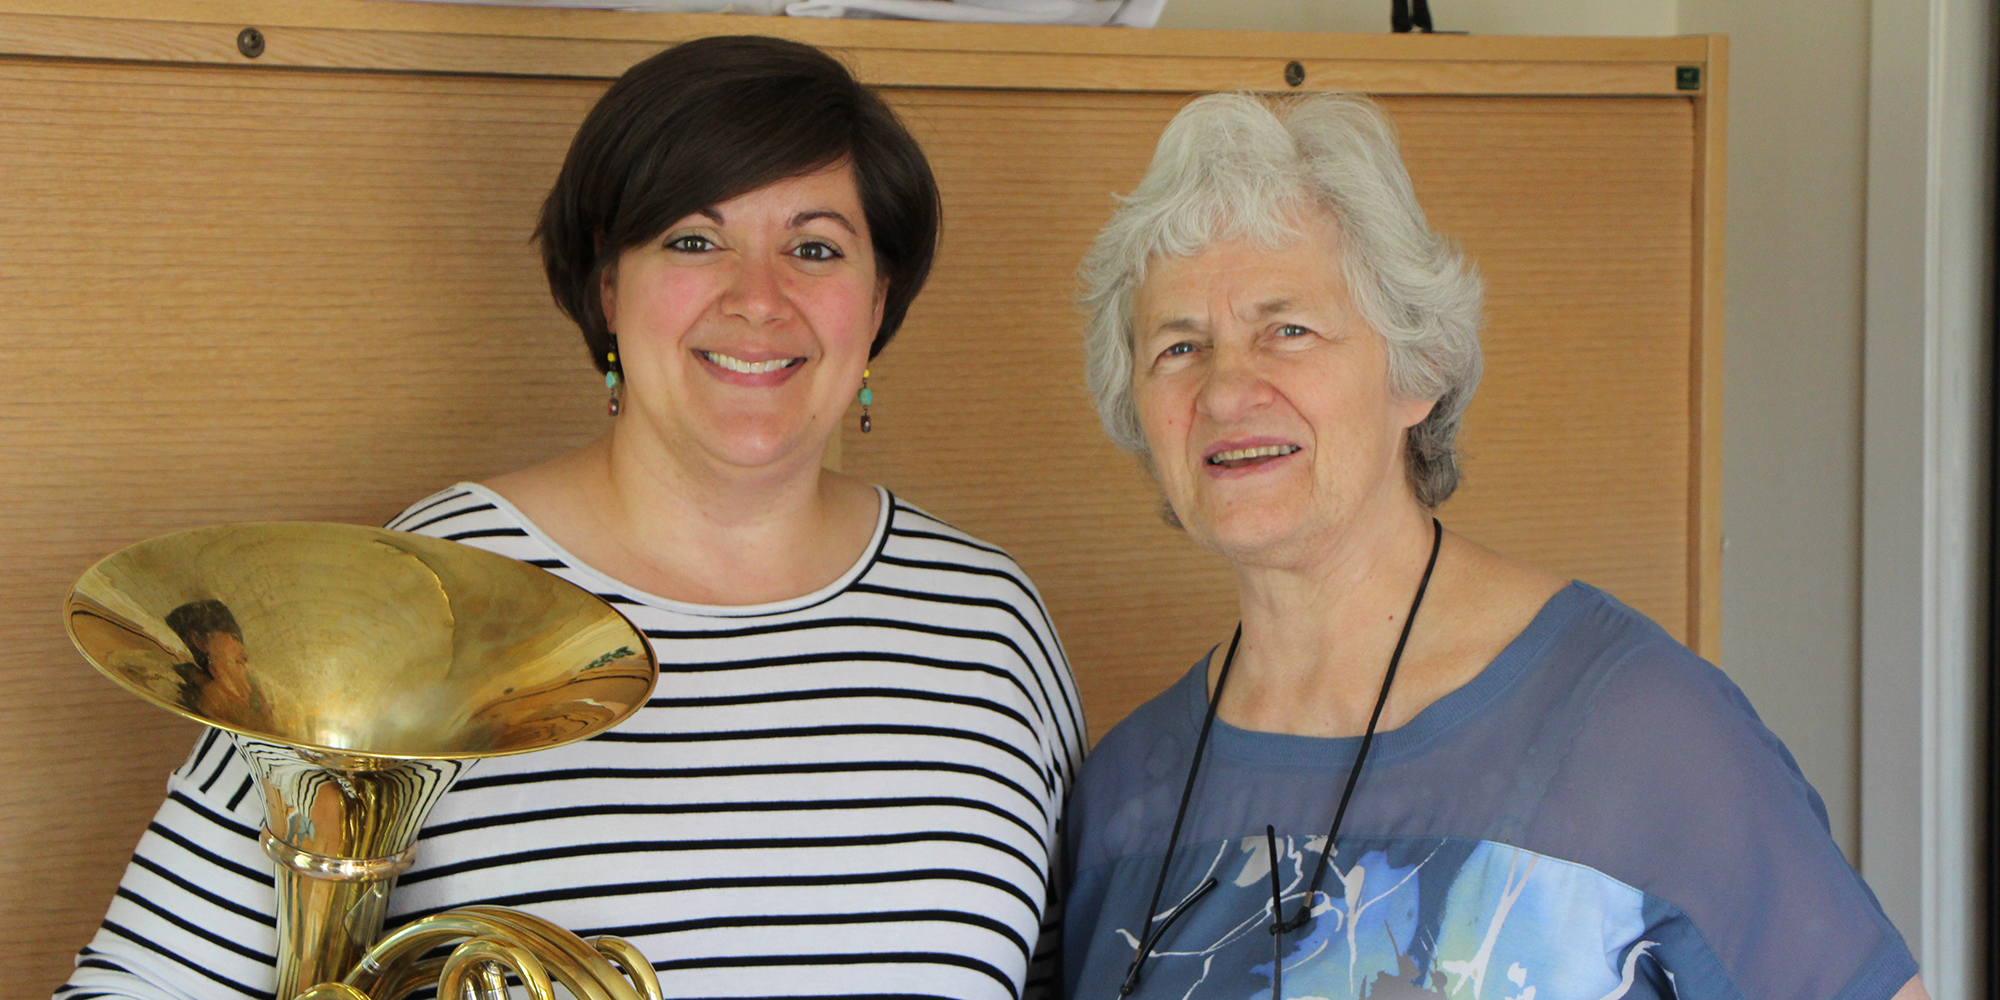 Katie Johnson-Webb poses with Norwegian horn master Frøydis Ree Wekre